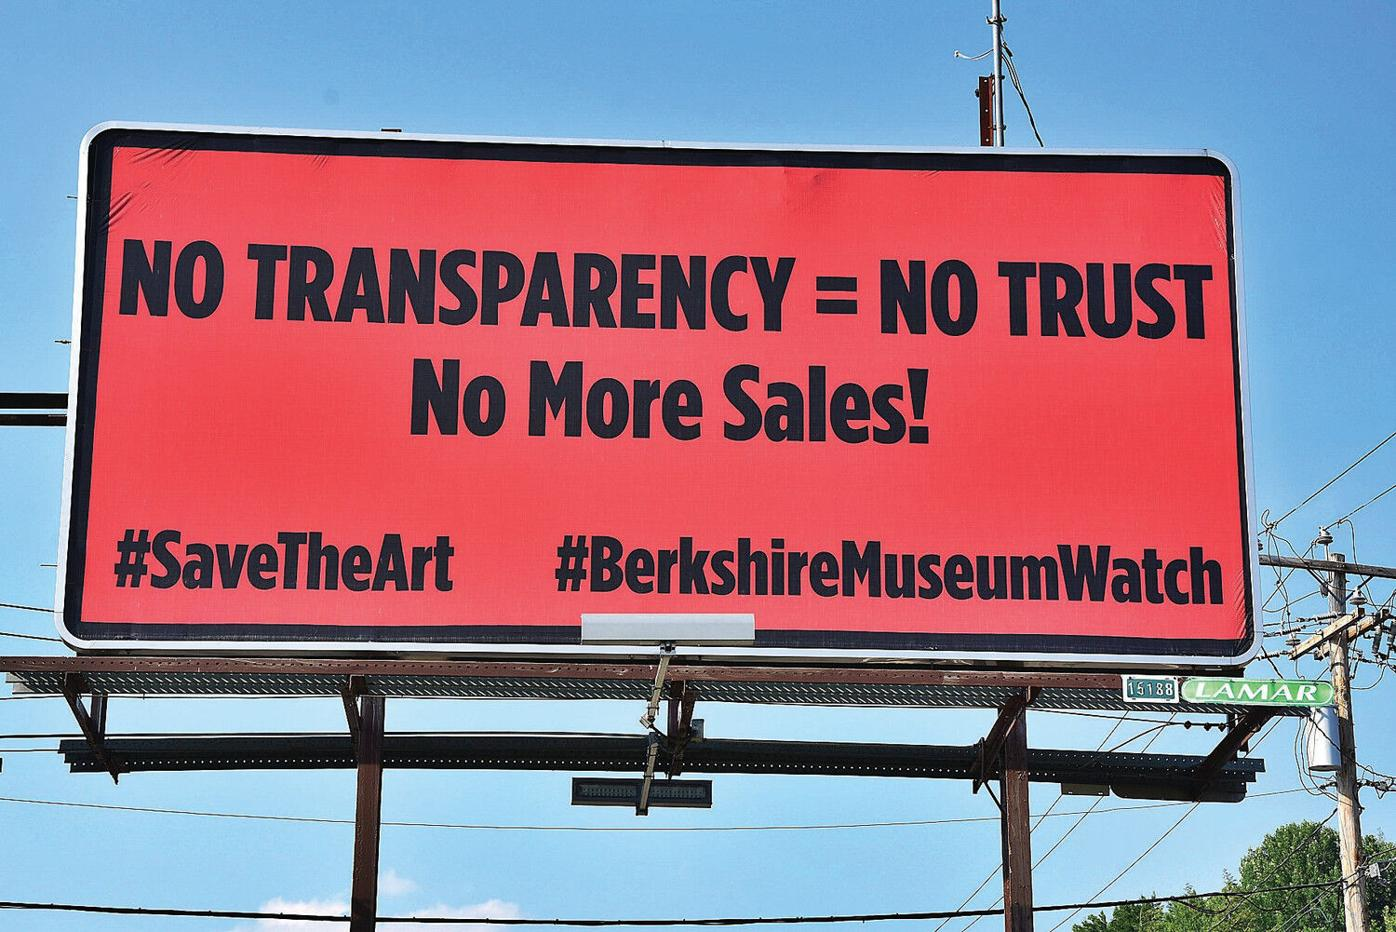 Foes of continued Berkshire Museum art sales ramp up message